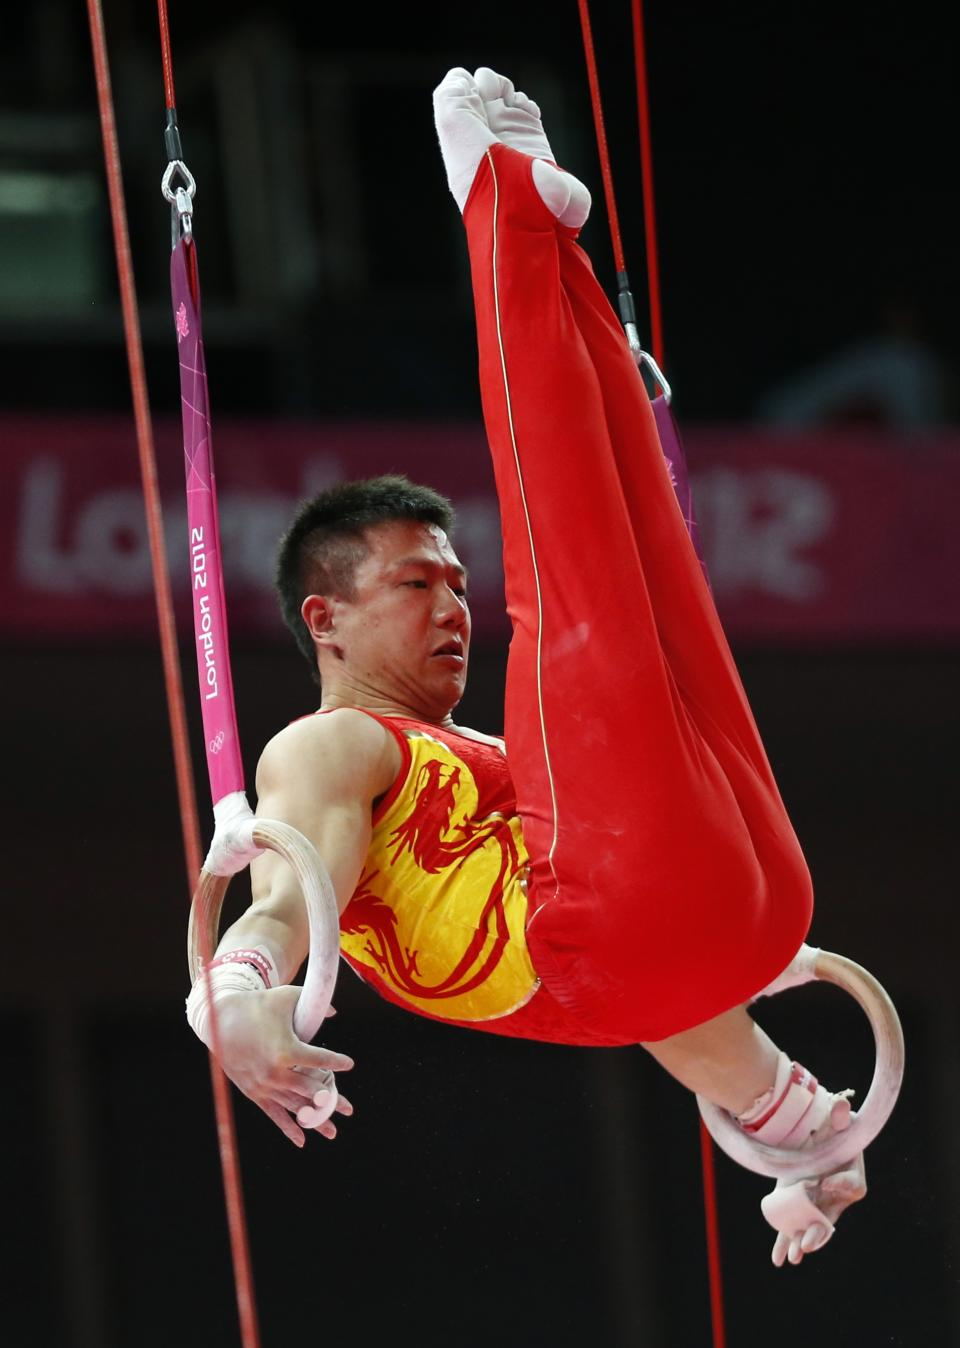 Chinese gymnast Chen Yibing performs on the rings during the Artistic Gymnastic men's team final at the 2012 Summer Olympics, Monday, July 30, 2012, in London. (AP Photo/Matt Dunham)